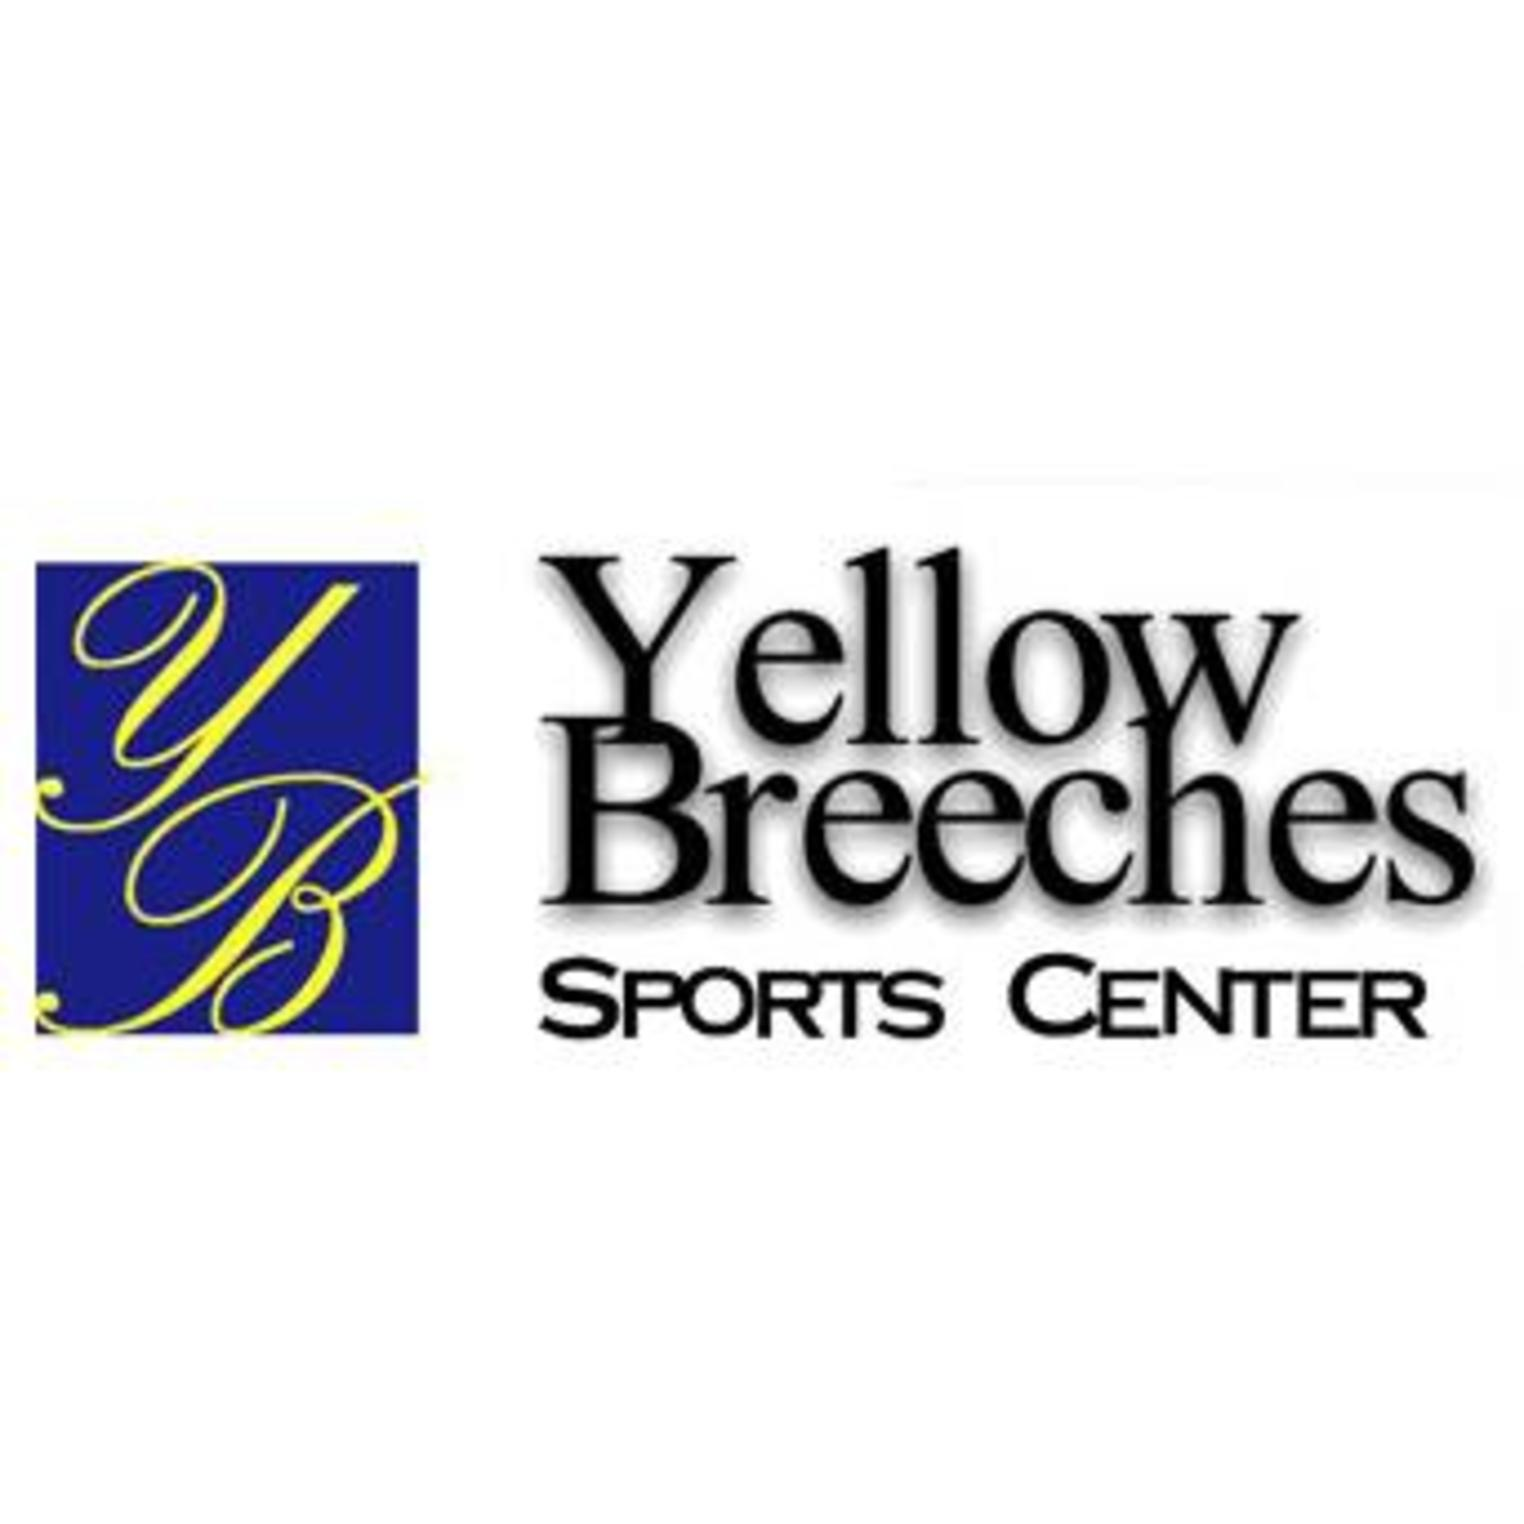 Yellow Breeches Sports Center